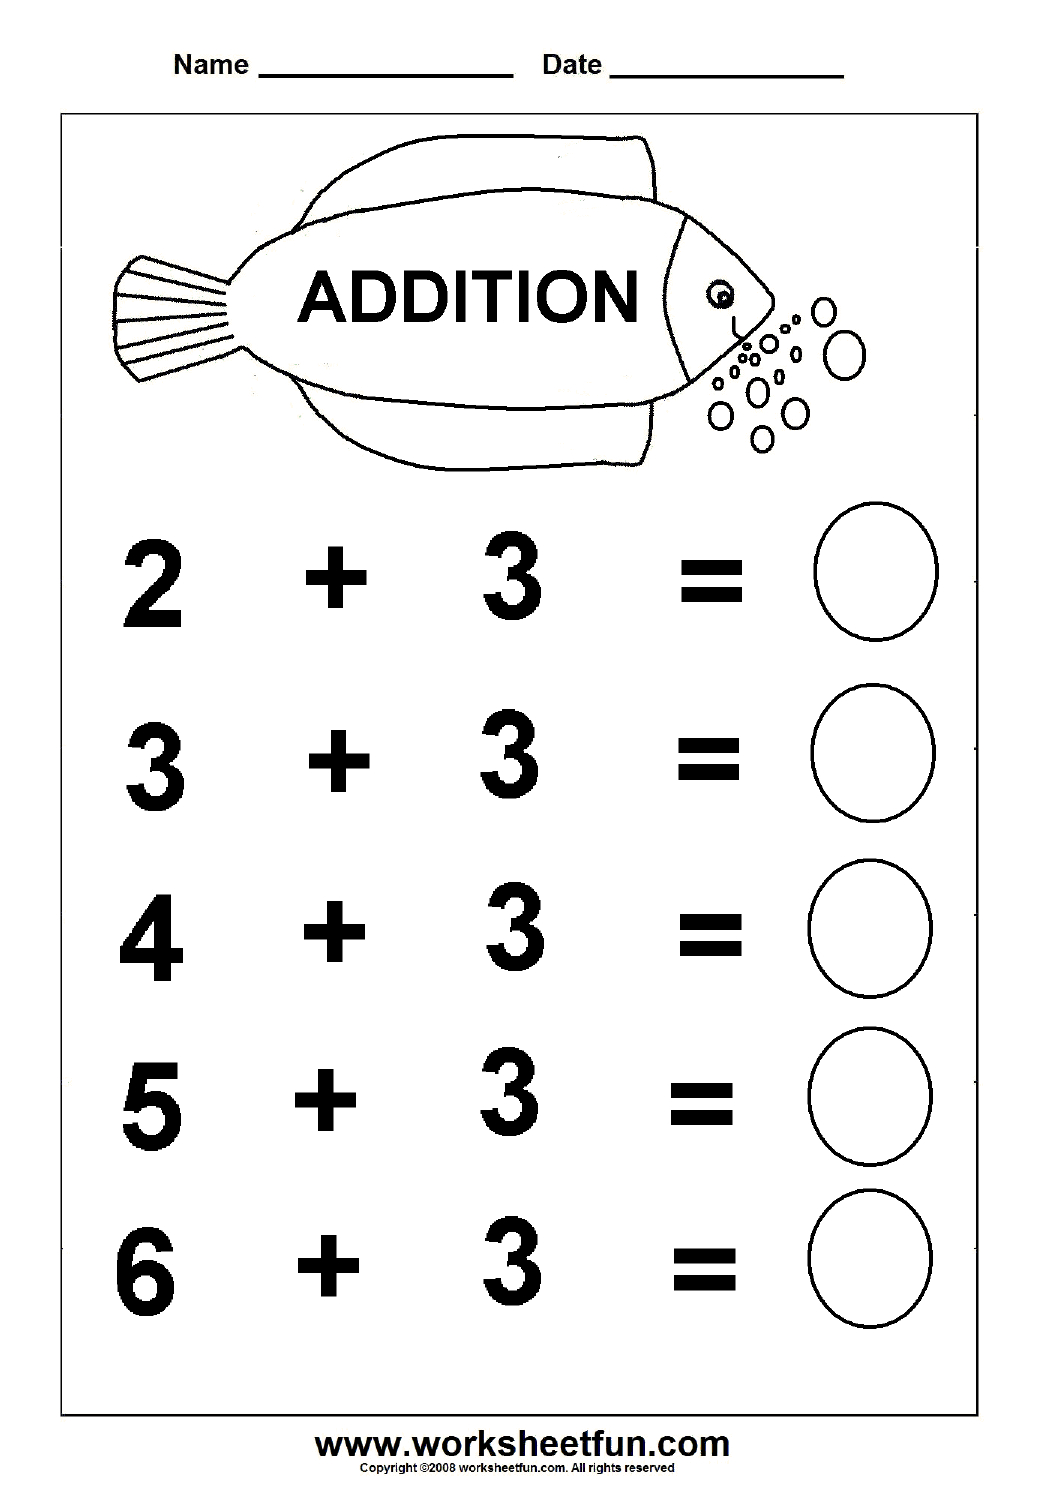 Beginner Addition – 6 Kindergarten Addition Worksheets / Free - Free Printable Math Worksheets For Kindergarten